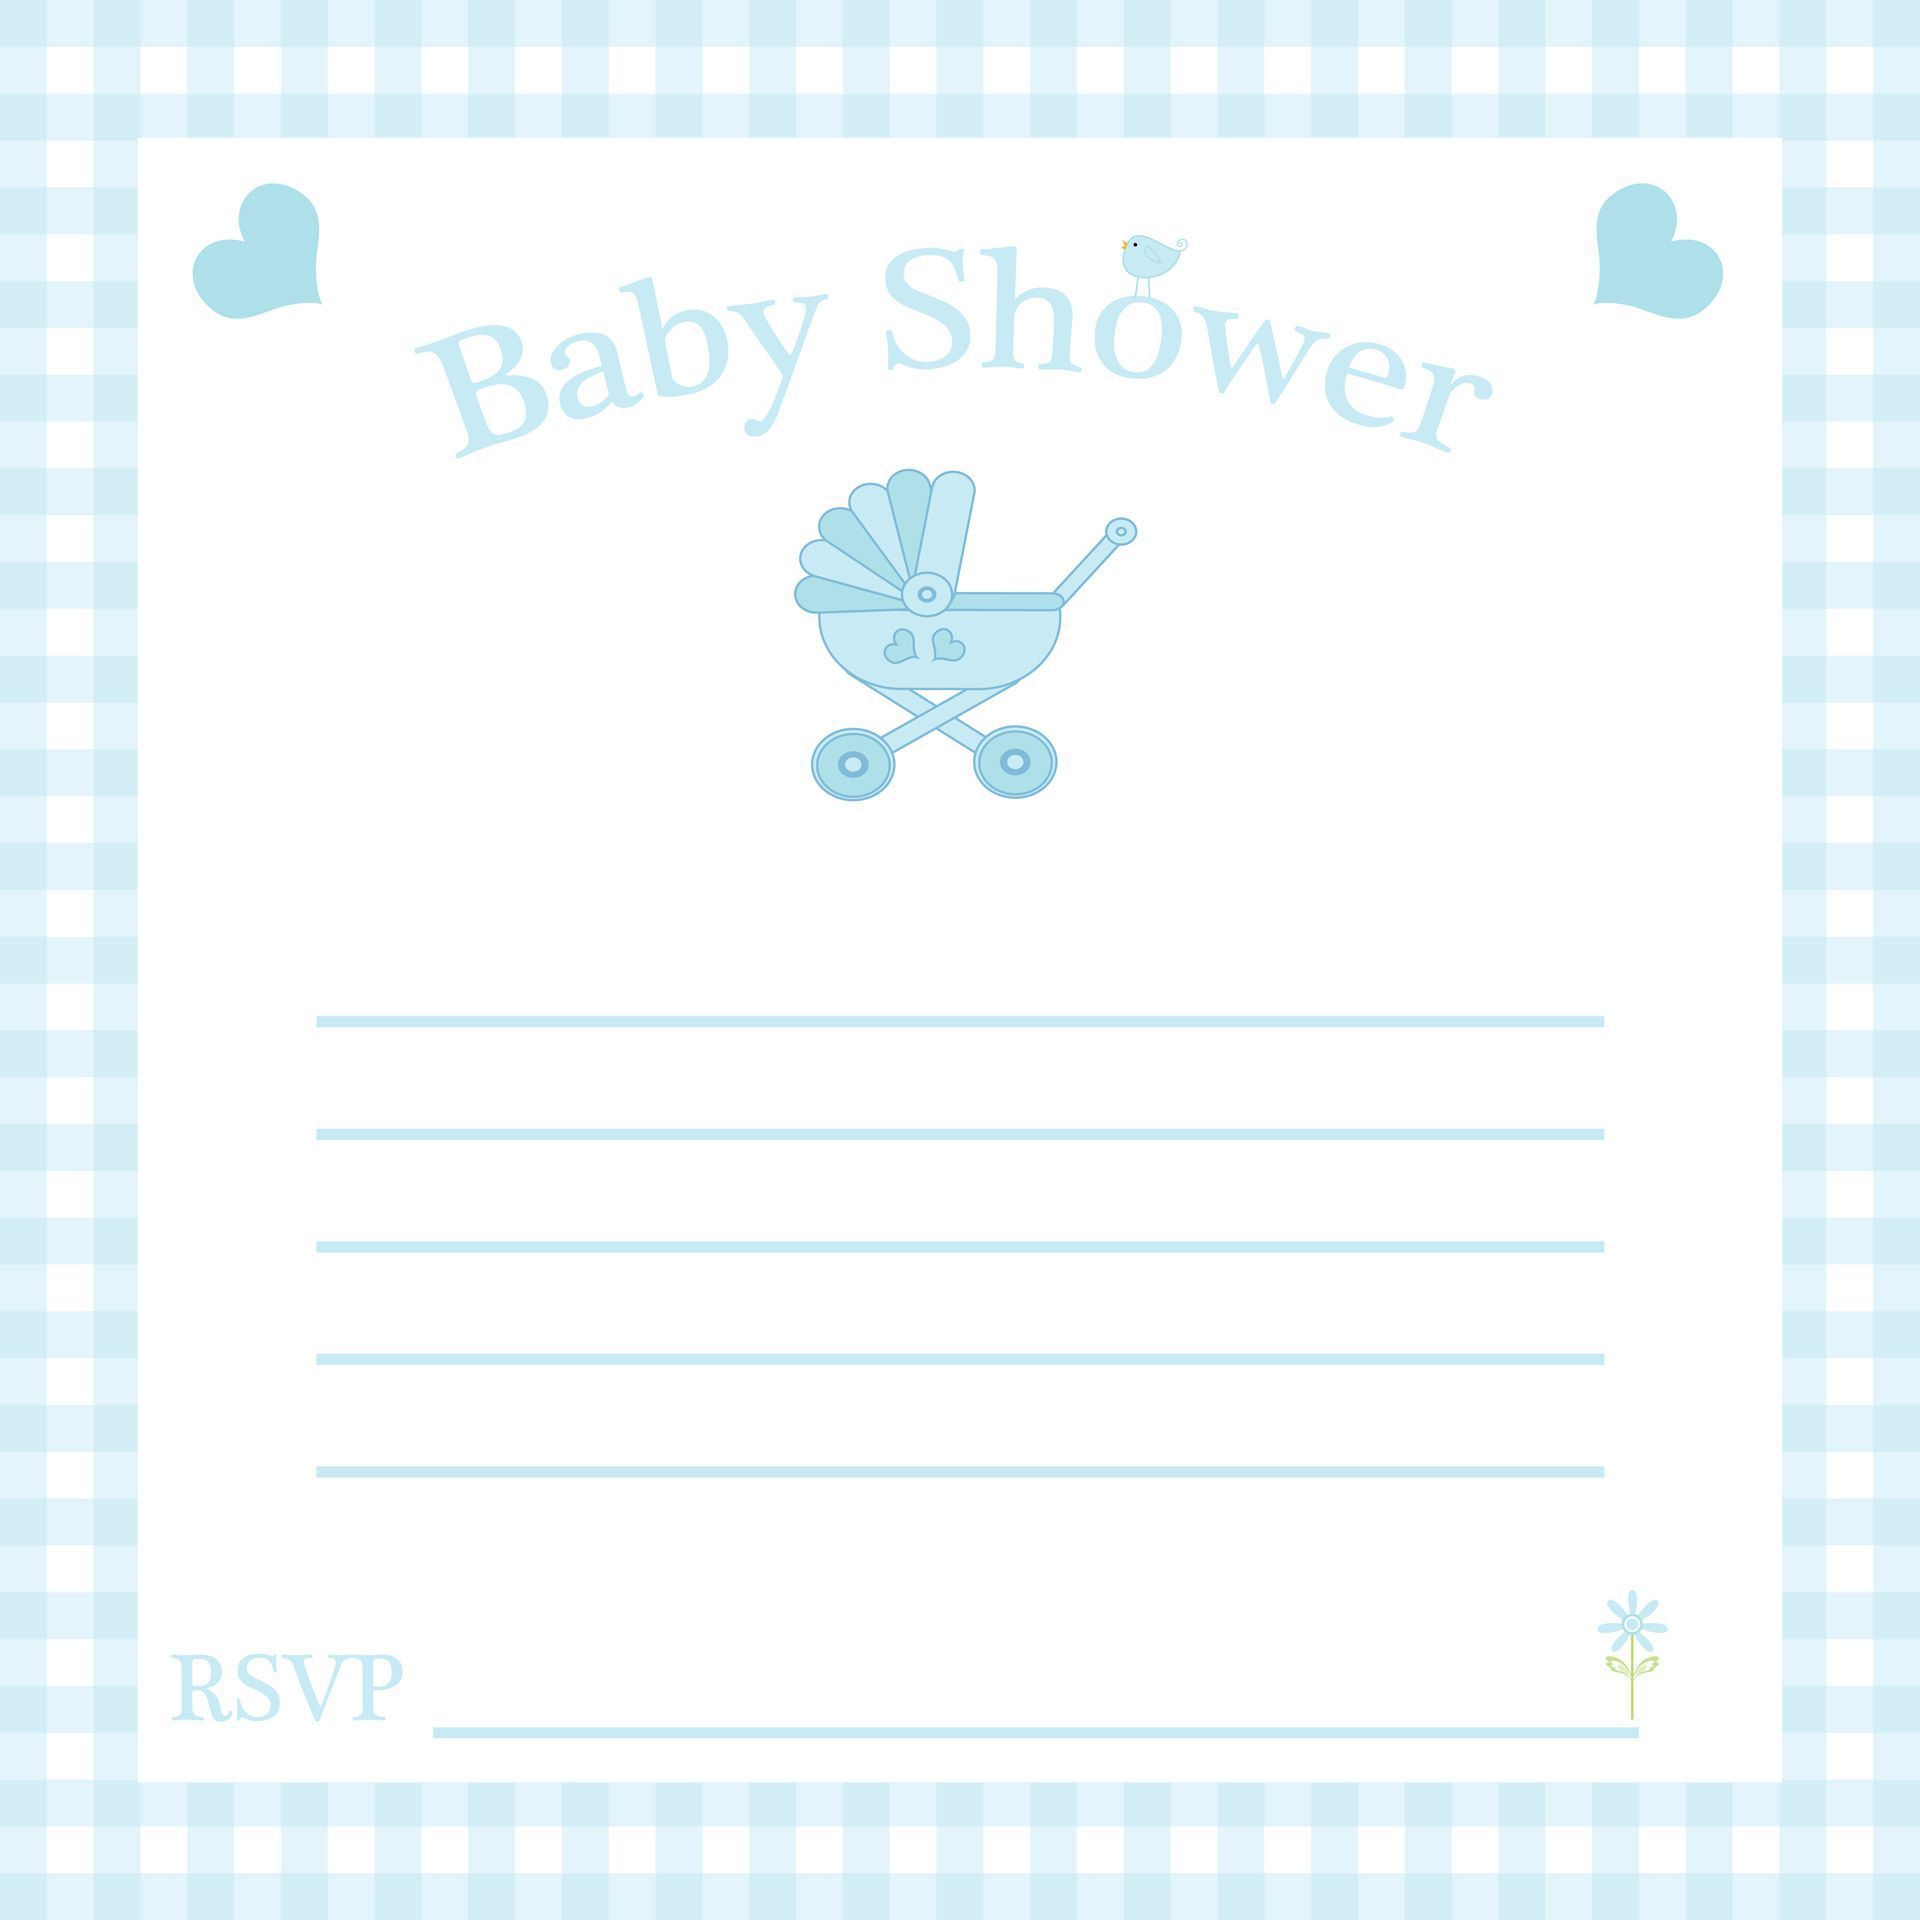 008 Archaicawful Baby Shower Template Word Highest Quality  Printable Search Free InvitationFull